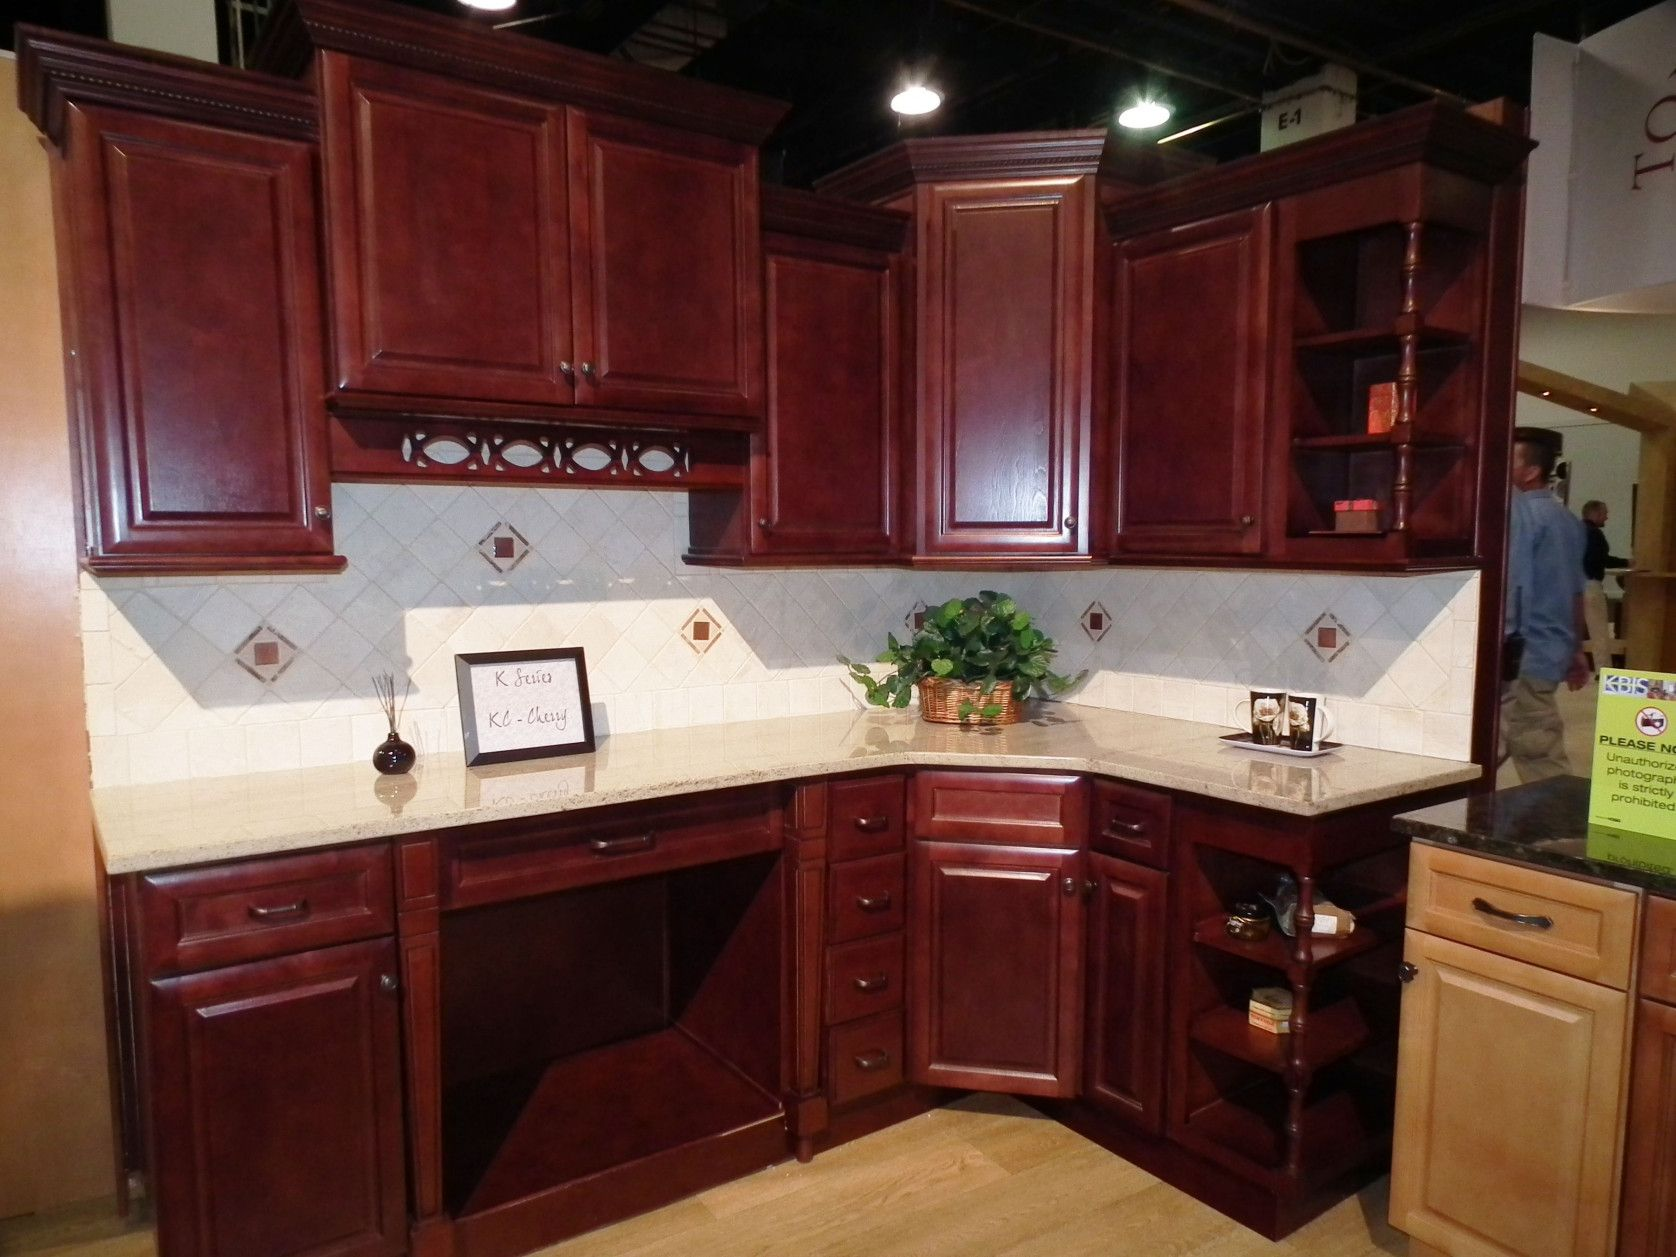 70+ All Wood Rta Kitchen Cabinets - Best Kitchen Cabinet Ideas Check more at  & 70+ All Wood Rta Kitchen Cabinets - Best Kitchen Cabinet Ideas Check ...